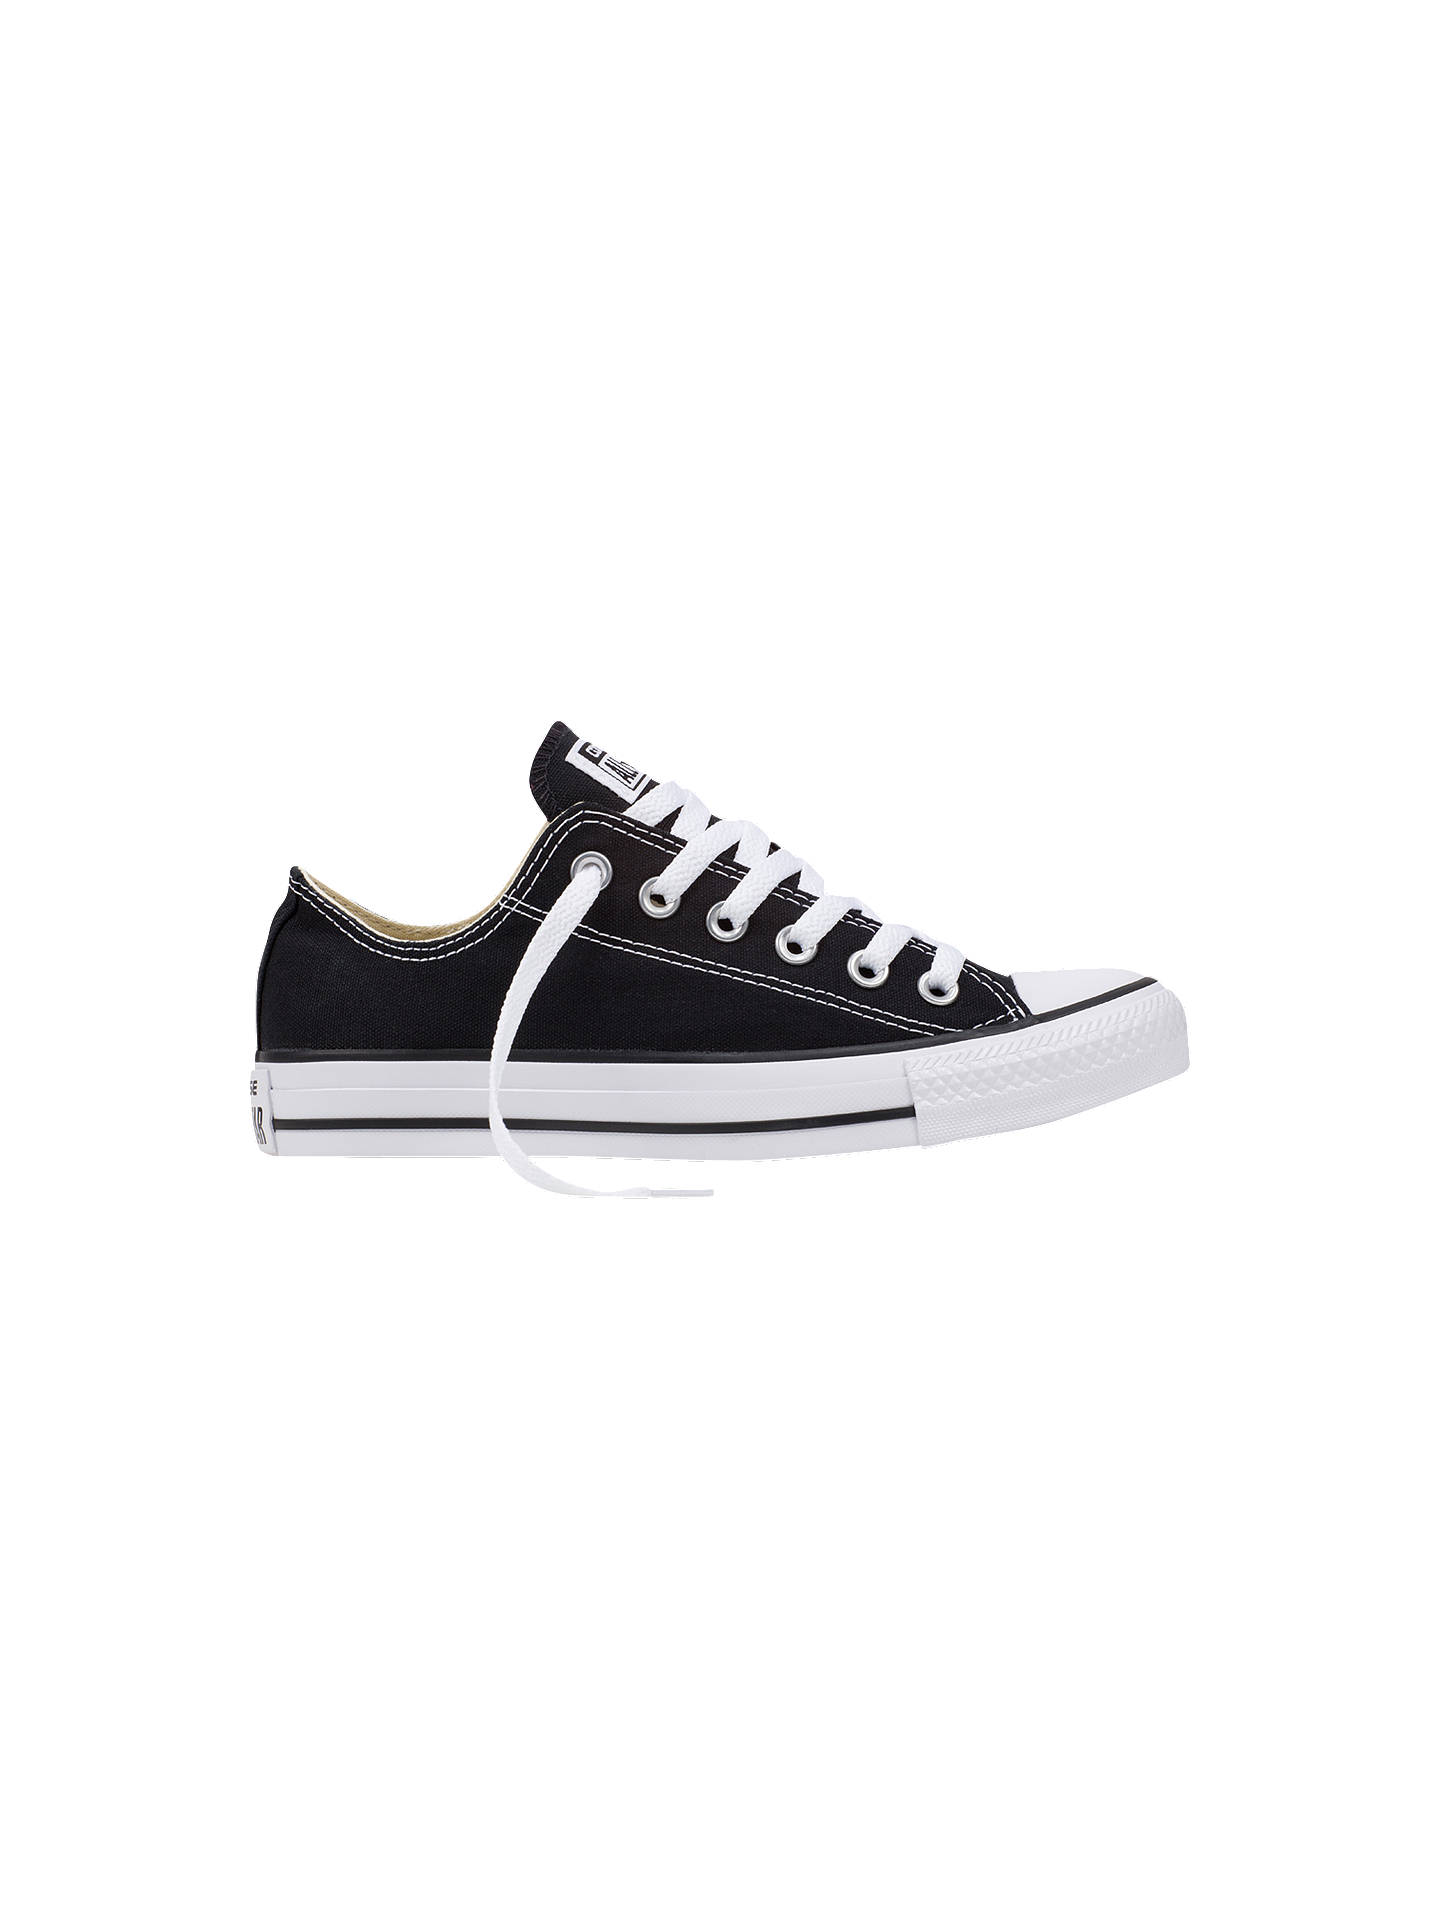 ea8808e667400e Converse Chuck Taylor All Star Ox Trainers at John Lewis   Partners